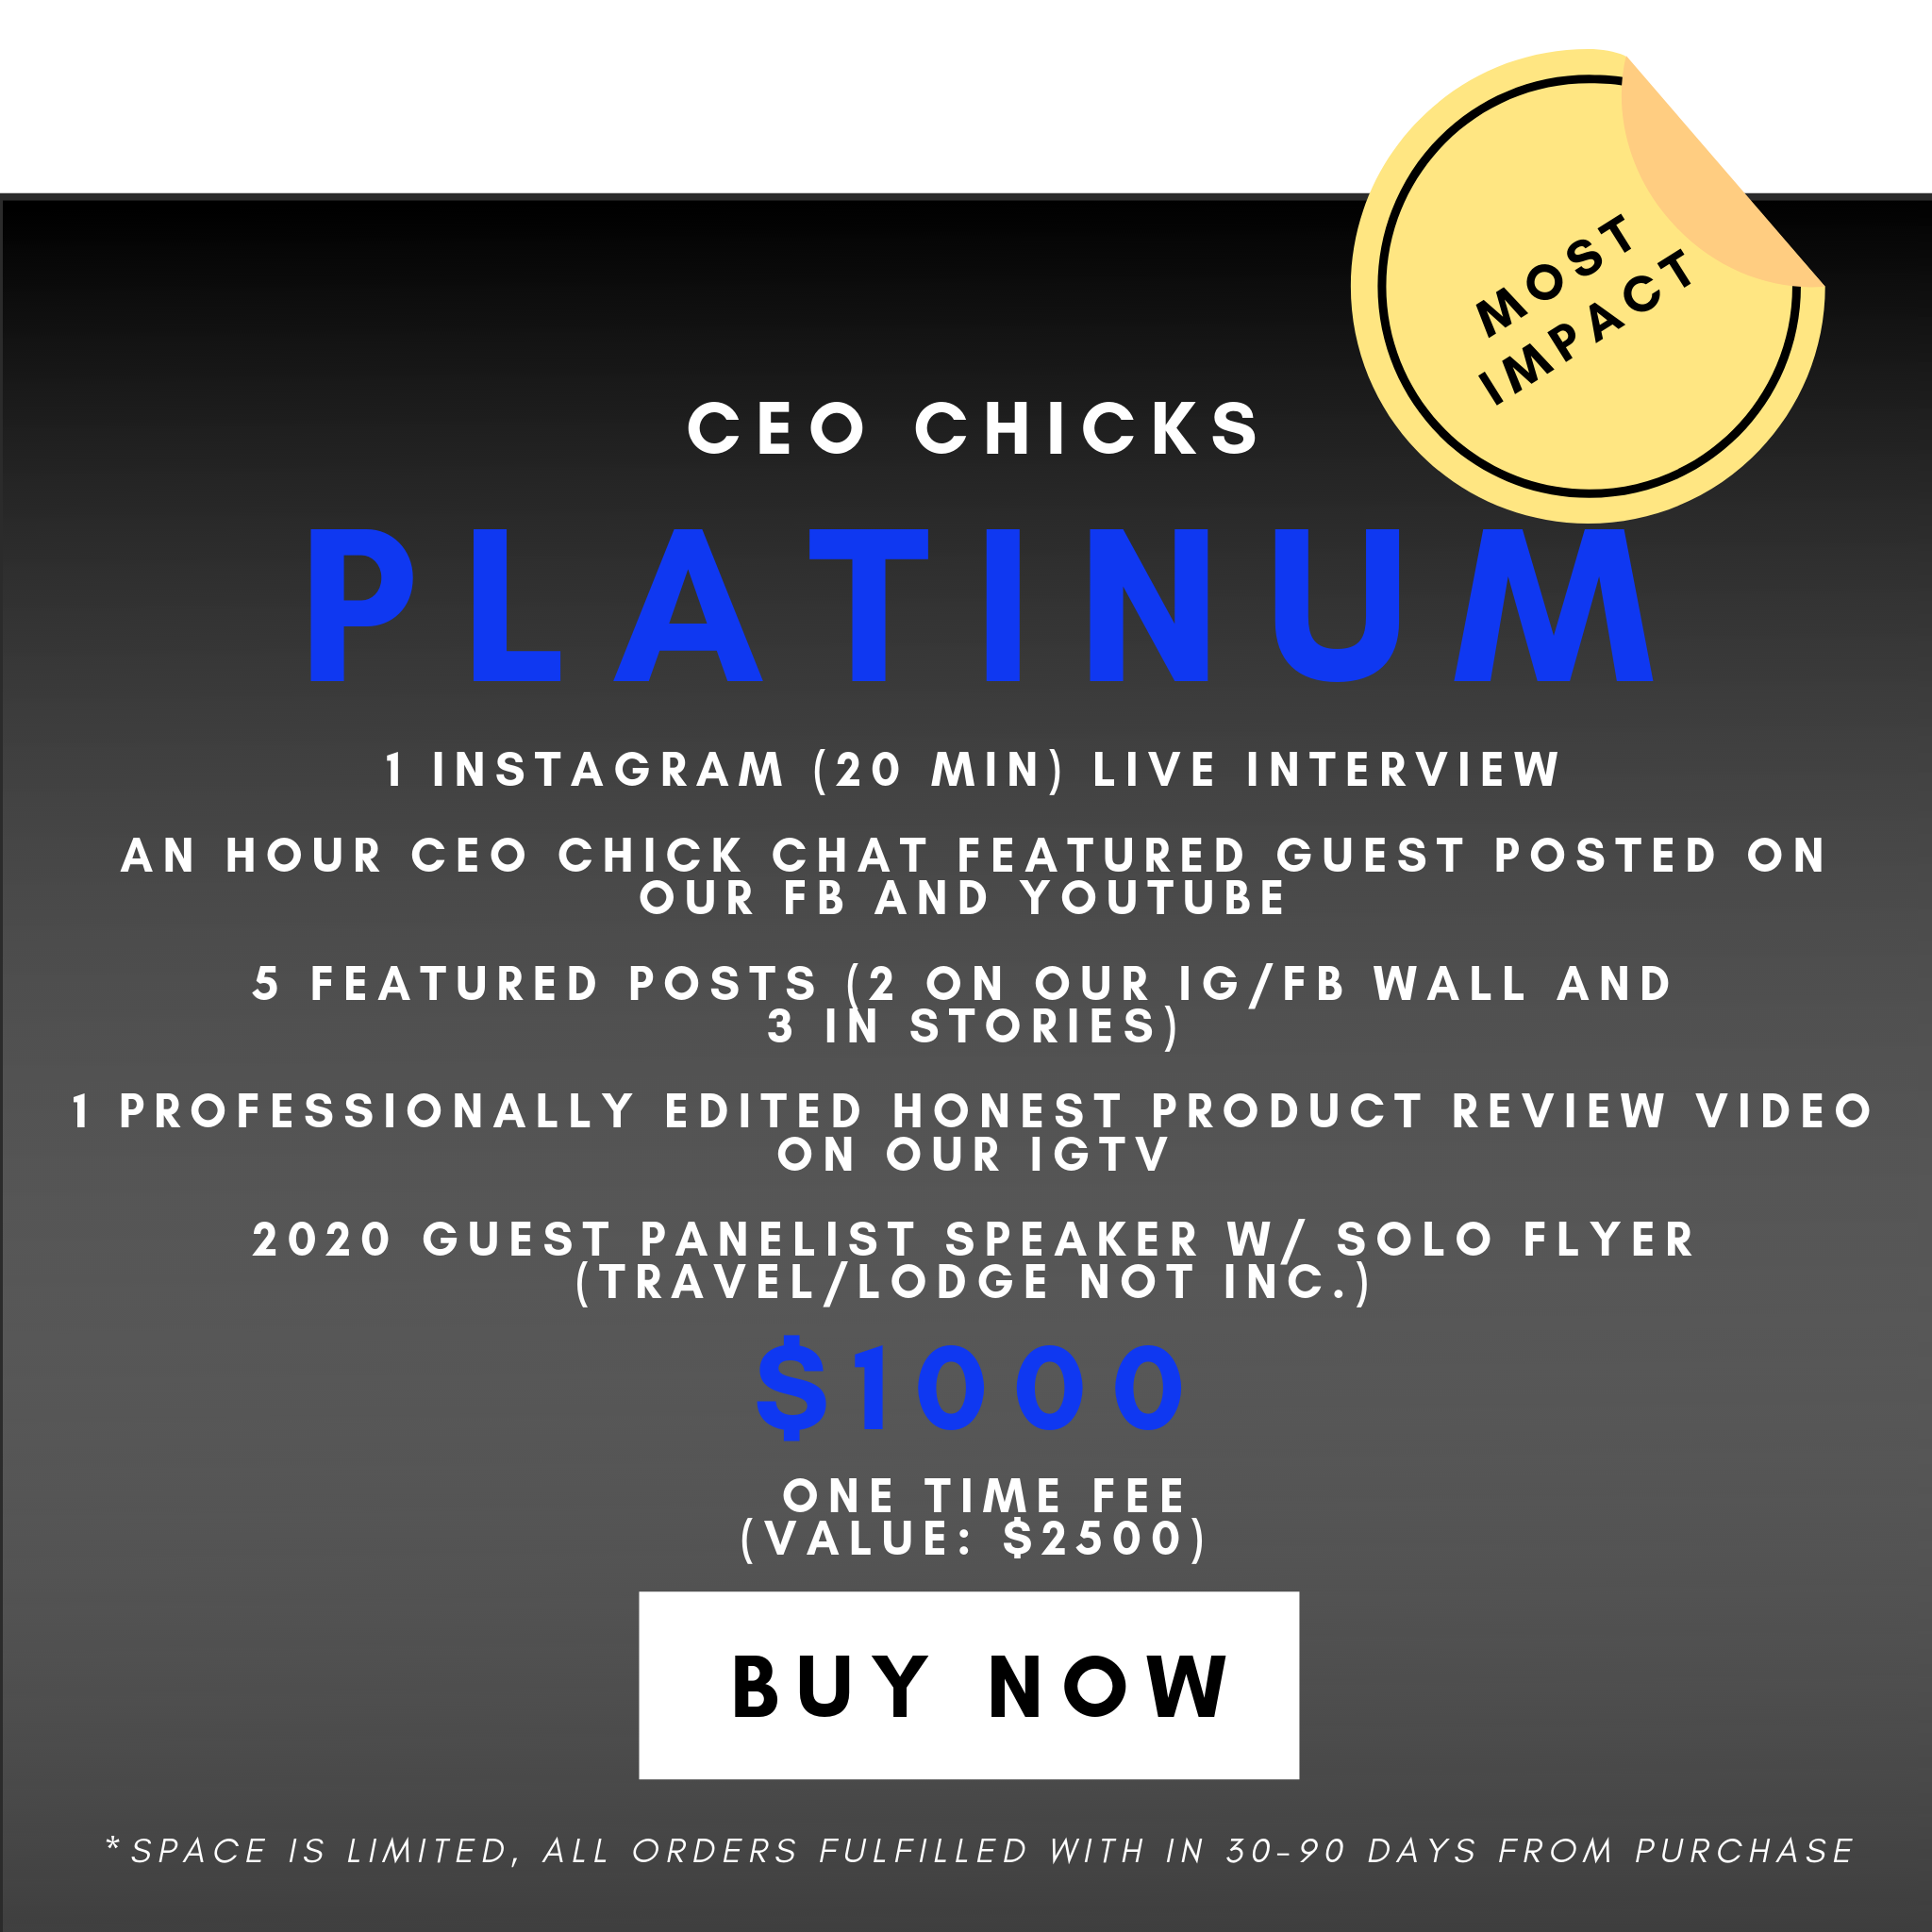 Platinum Partnership - Get interviewed by our Founder, Coleen Otero on our platform. Increase your visibility, engagement and reach by partnering with us! MEMBERS REQUEST YOUR DISCOUNT CODE.1 IG Live Interview w/ Flyer1 CEO Chick Chat Interview w/ Flyer5 IG Feature Posts (2 on our IG/FB Wall and 3 in Stories)1 Video Product Review Panel Speaker Guest (2020)